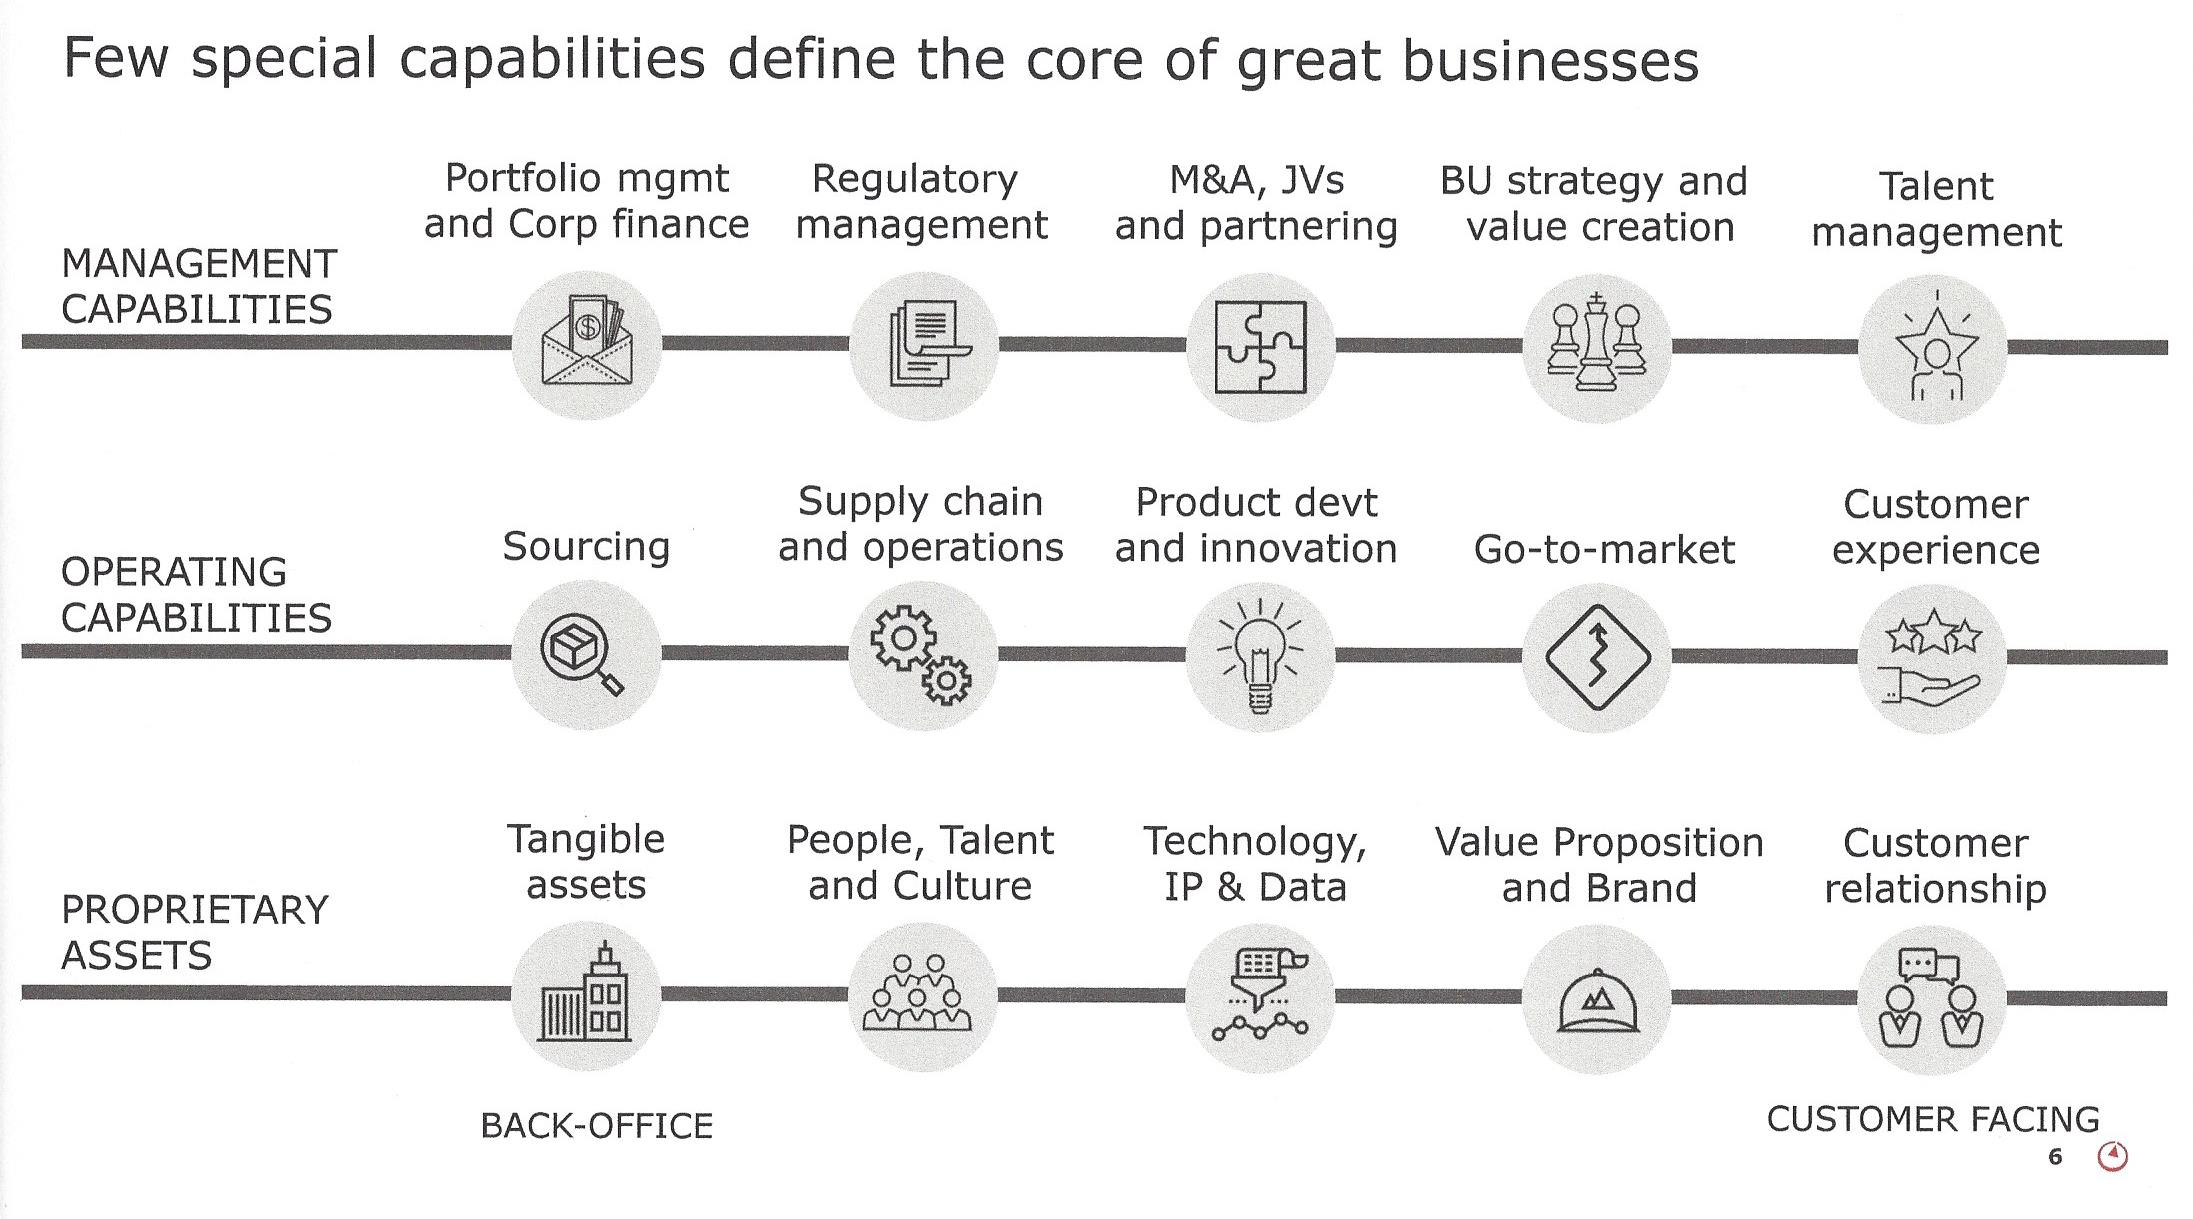 Few Special Capabilities Define the Core of Great Business.jpg